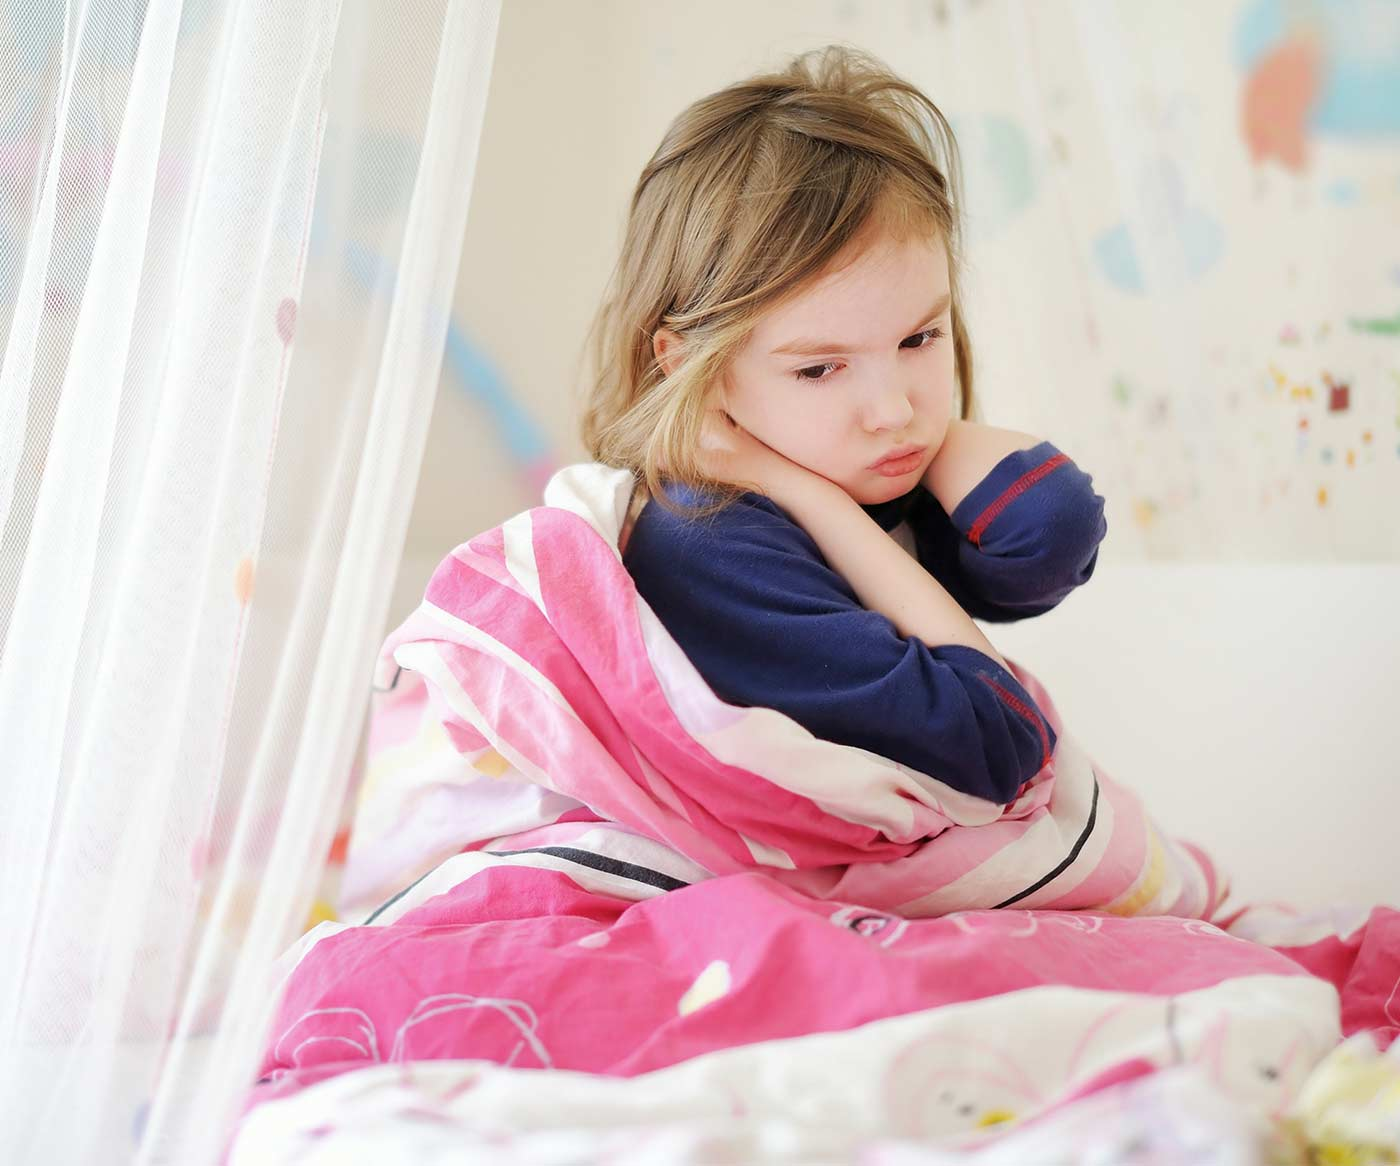 Mad little girl in bed: the biggest reason you should stand your ground